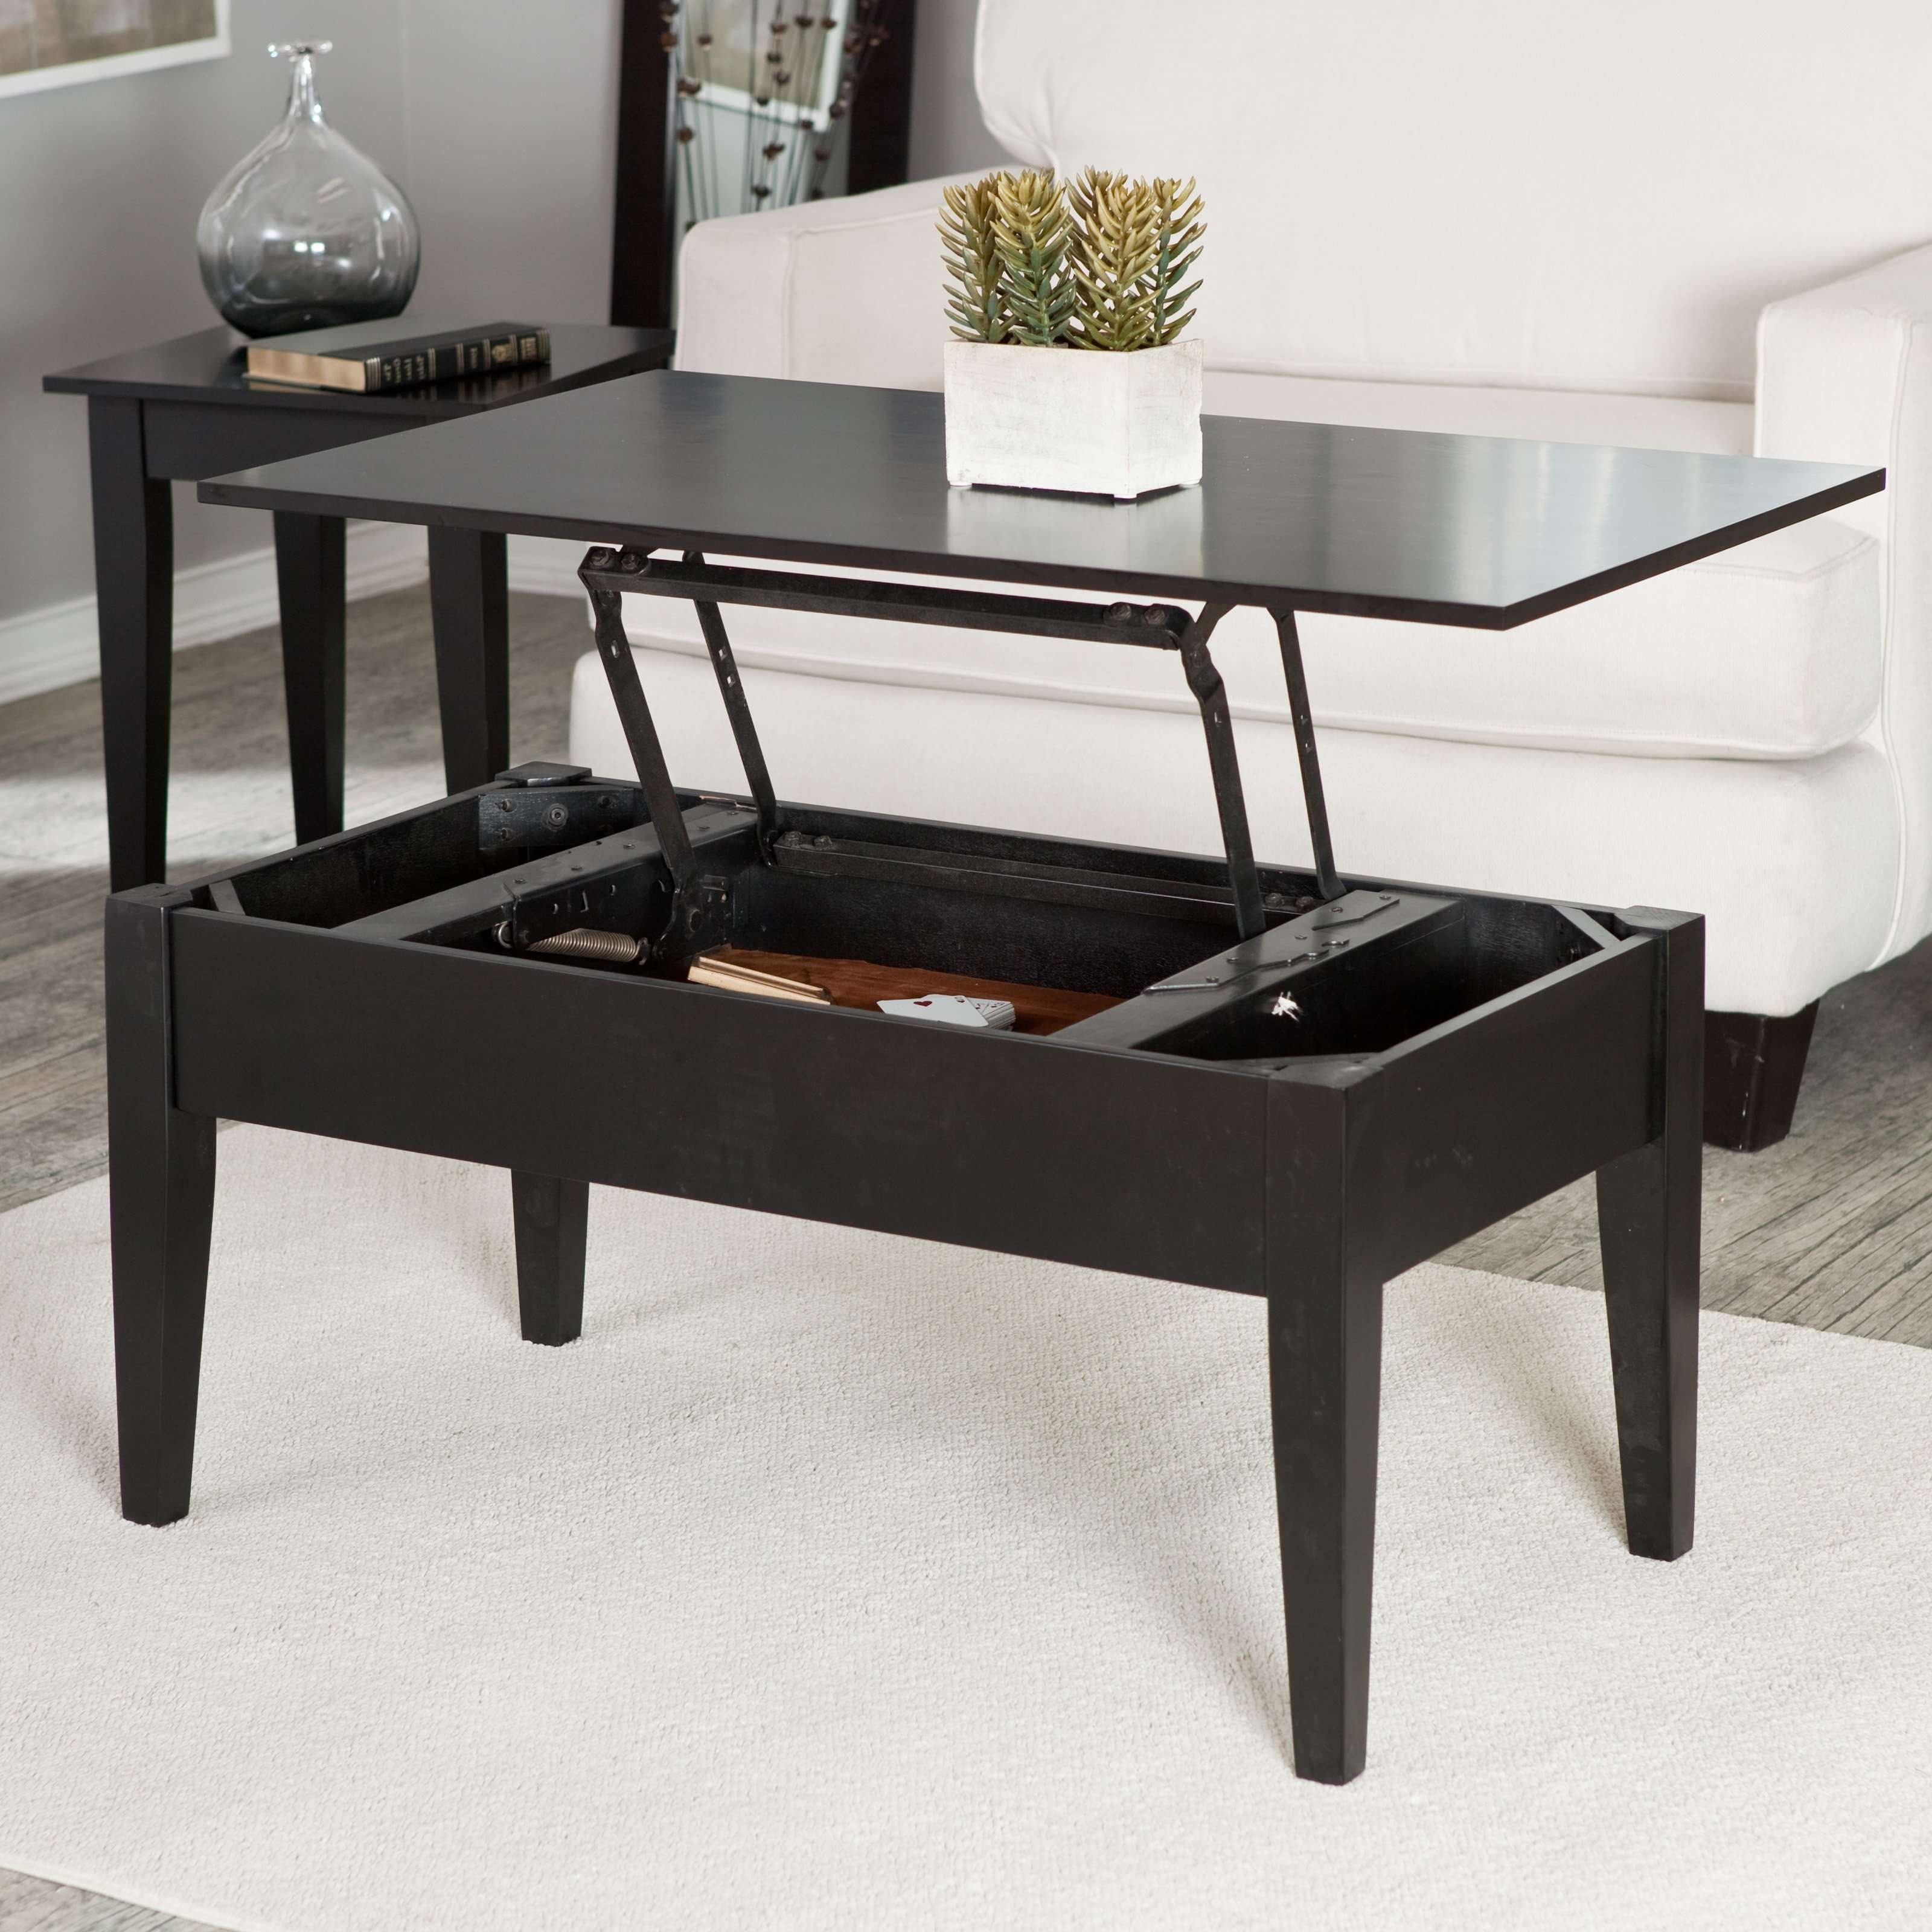 Raise Up Coffee Table Top 20 Of Coffee Tables With Lift Up Top